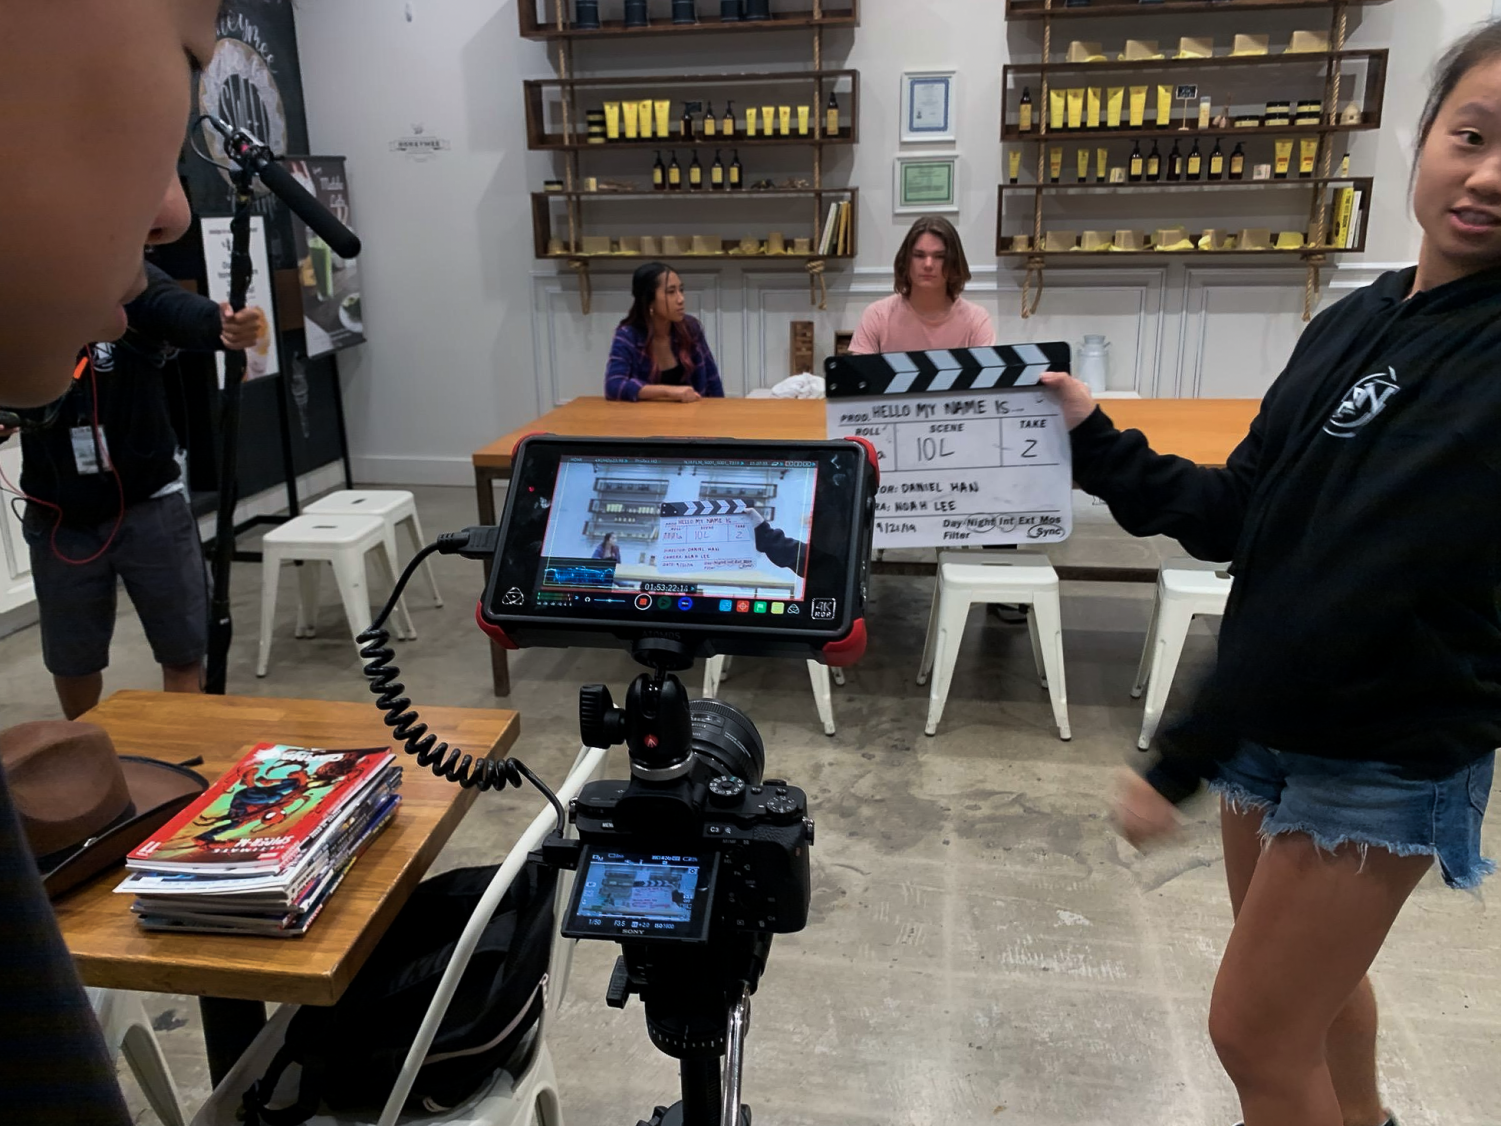 """Producer and junior Skye Lee positions the clapperboard in front of the camera to designate the scene on the set of the short film, """"Hello My Name Is."""" """"Hello My Name Is"""" is one of many entries from students being submitted to Orange County Film Festival this year."""